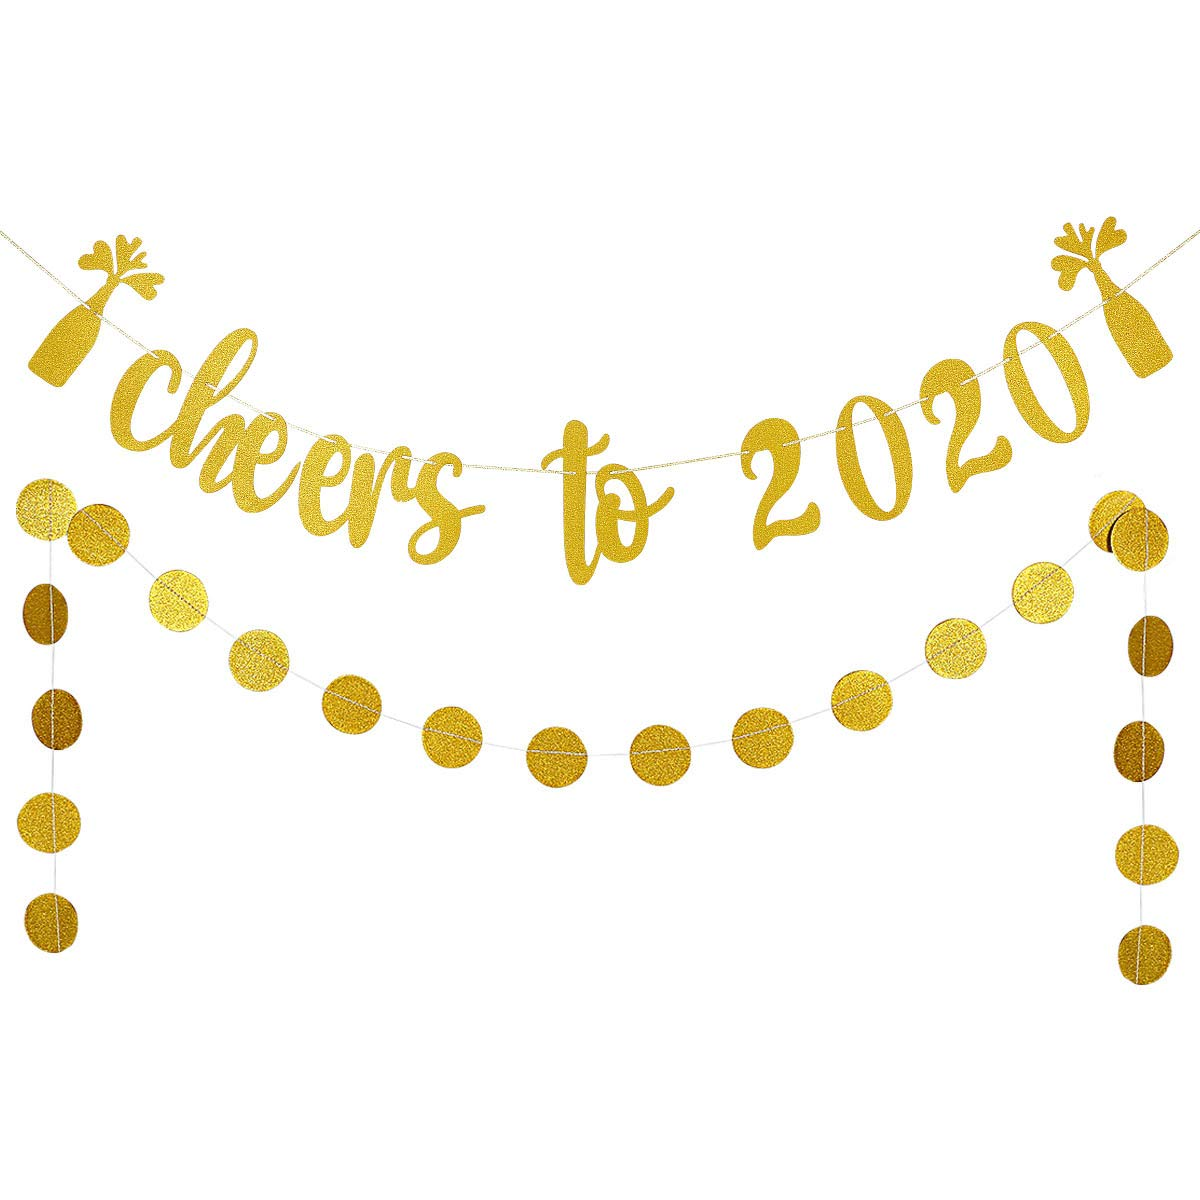 New Years Eve Party Decorations,New Years Party Decor Gold Glittery Cheers to 2020 Banner and Gold Glittery Circle Dots Garland Farewell to 2019 and welcome to 2020